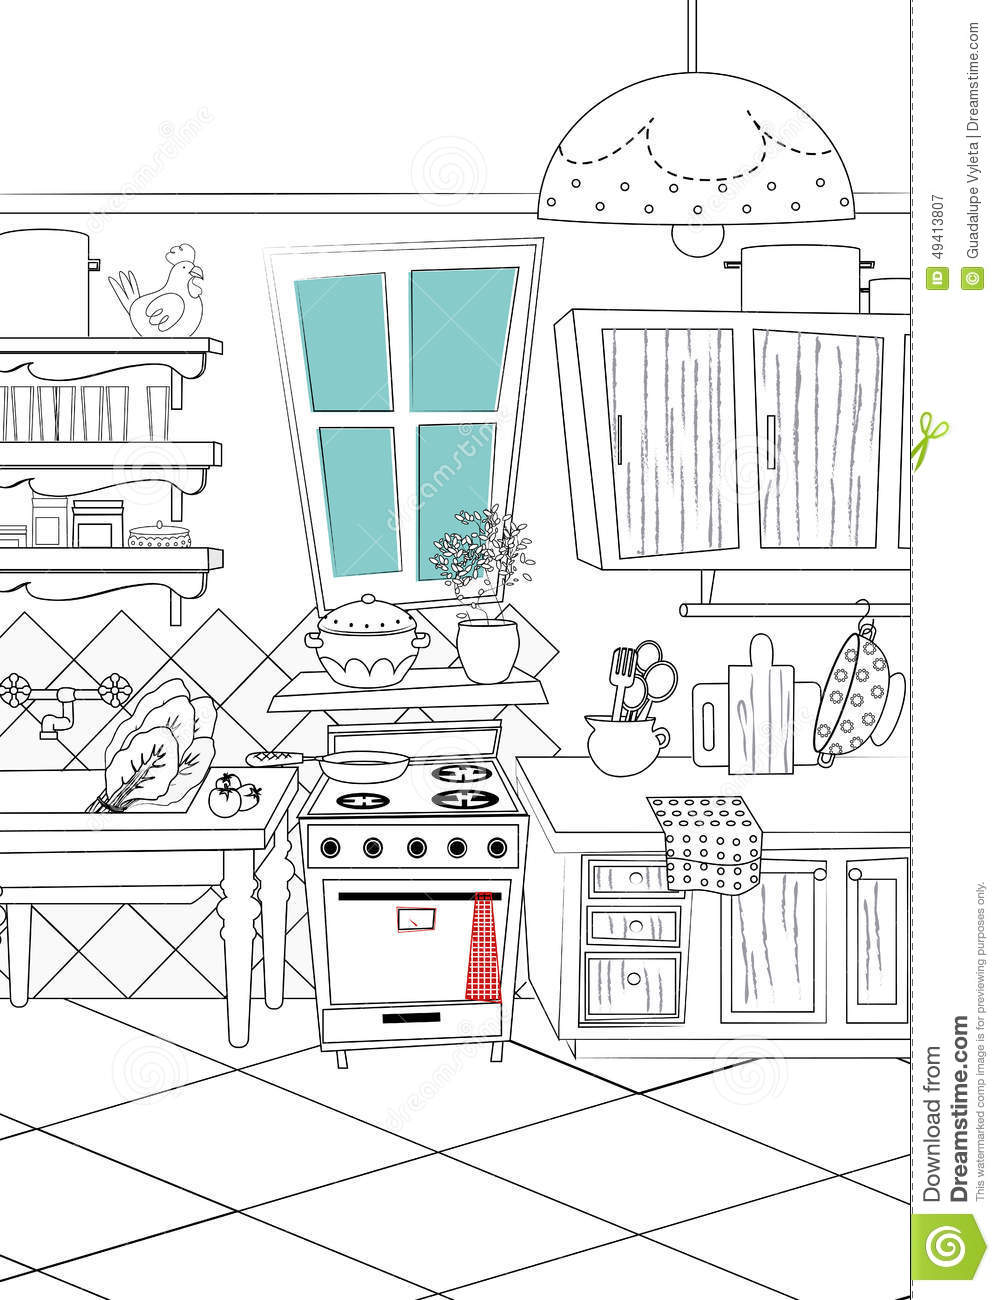 Black And White Kitchen Cartoon Style Background - Illustration Stock ...